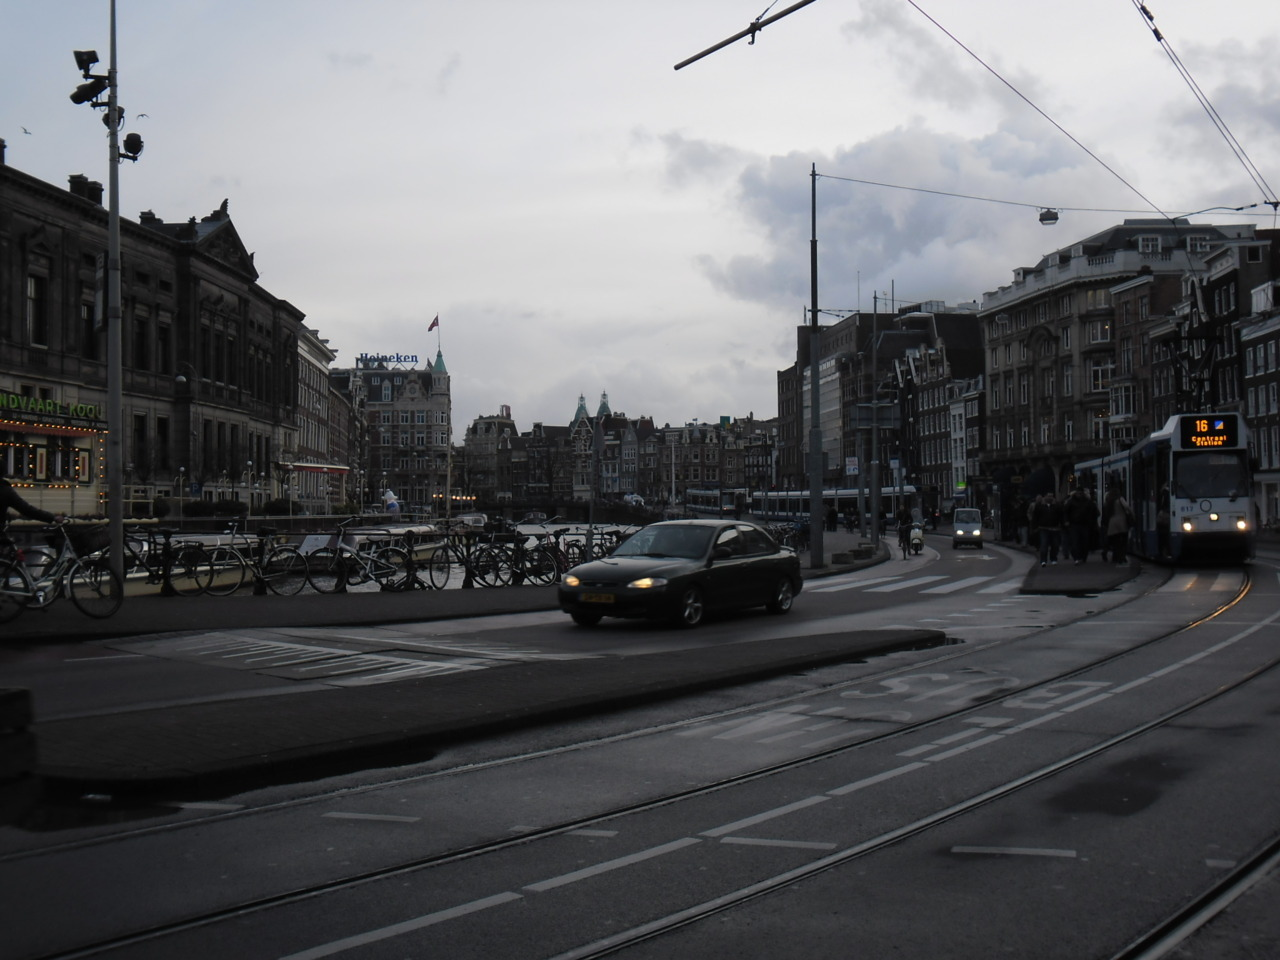 Amsterdam, Netherlands. Photo taken by me, 5 December 2011.